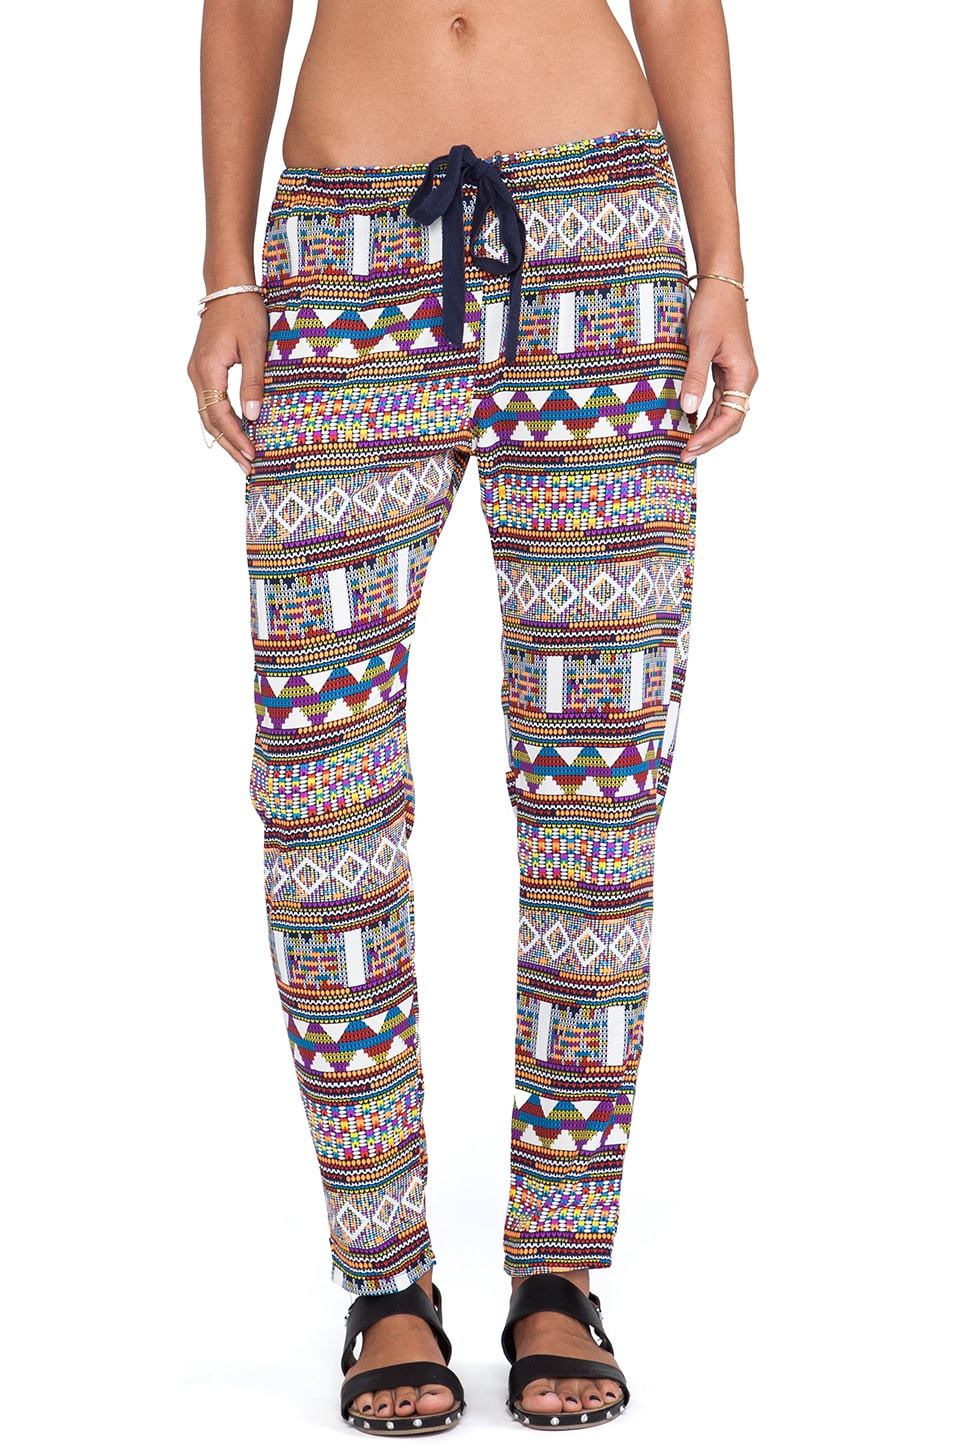 Surf Gypsy Tribal Print Pants in Orange & Navy